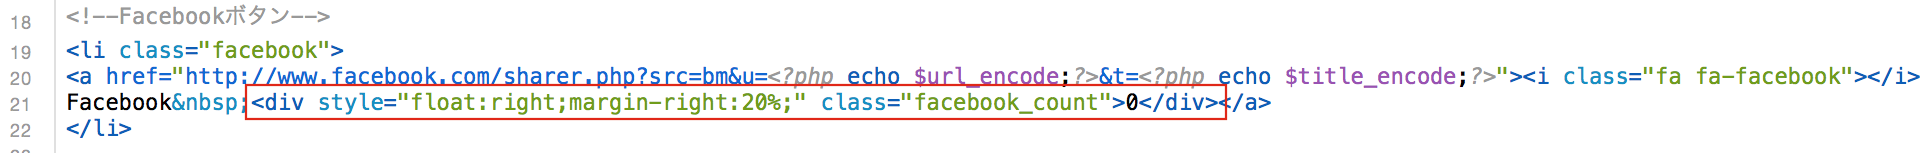 javascript_facebook_like1